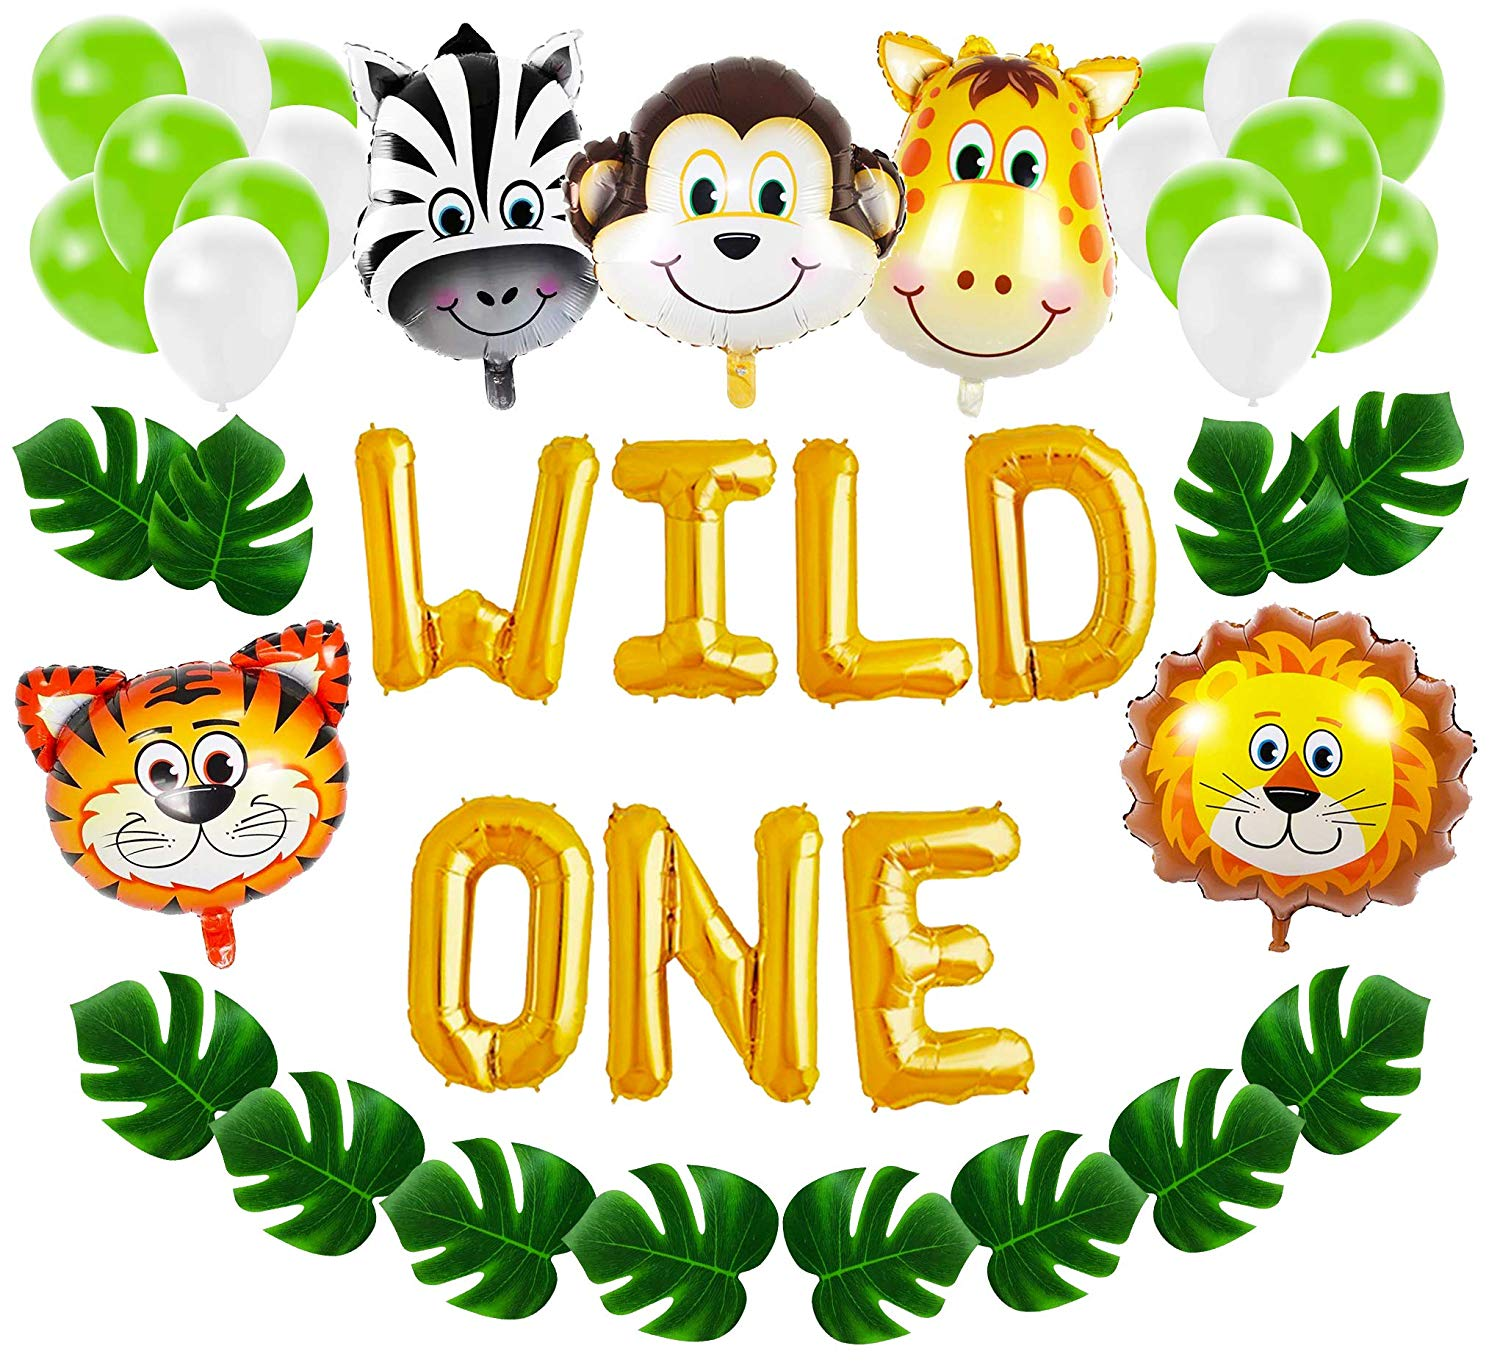 Wild One First Birthday Balloon Decoration Kit, 1st Boy Girl Theme Bday  Party Banner Decoration Set.